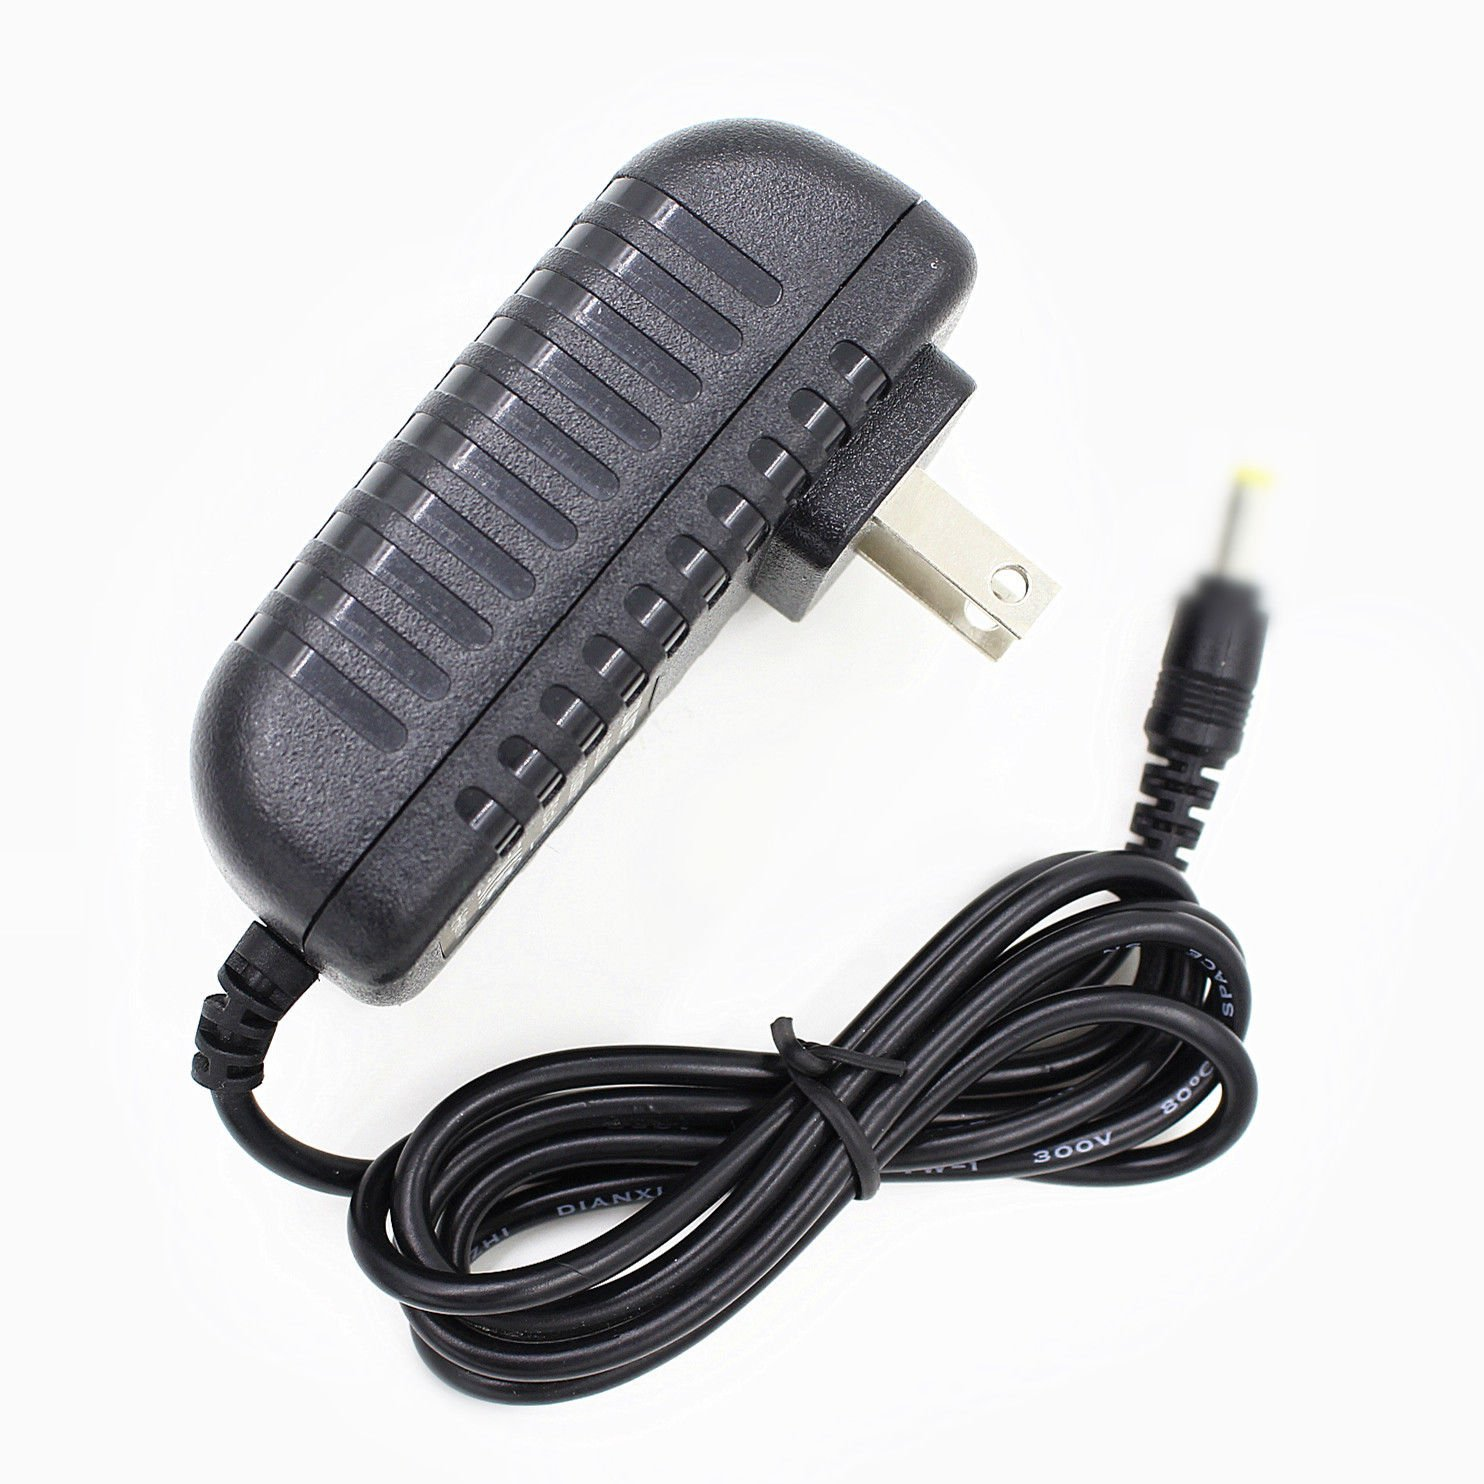 US Power Supply Adapter Cord Lead For IOMEGA GDHDU GDHDU2 EXTERNAL HARD DRIVE